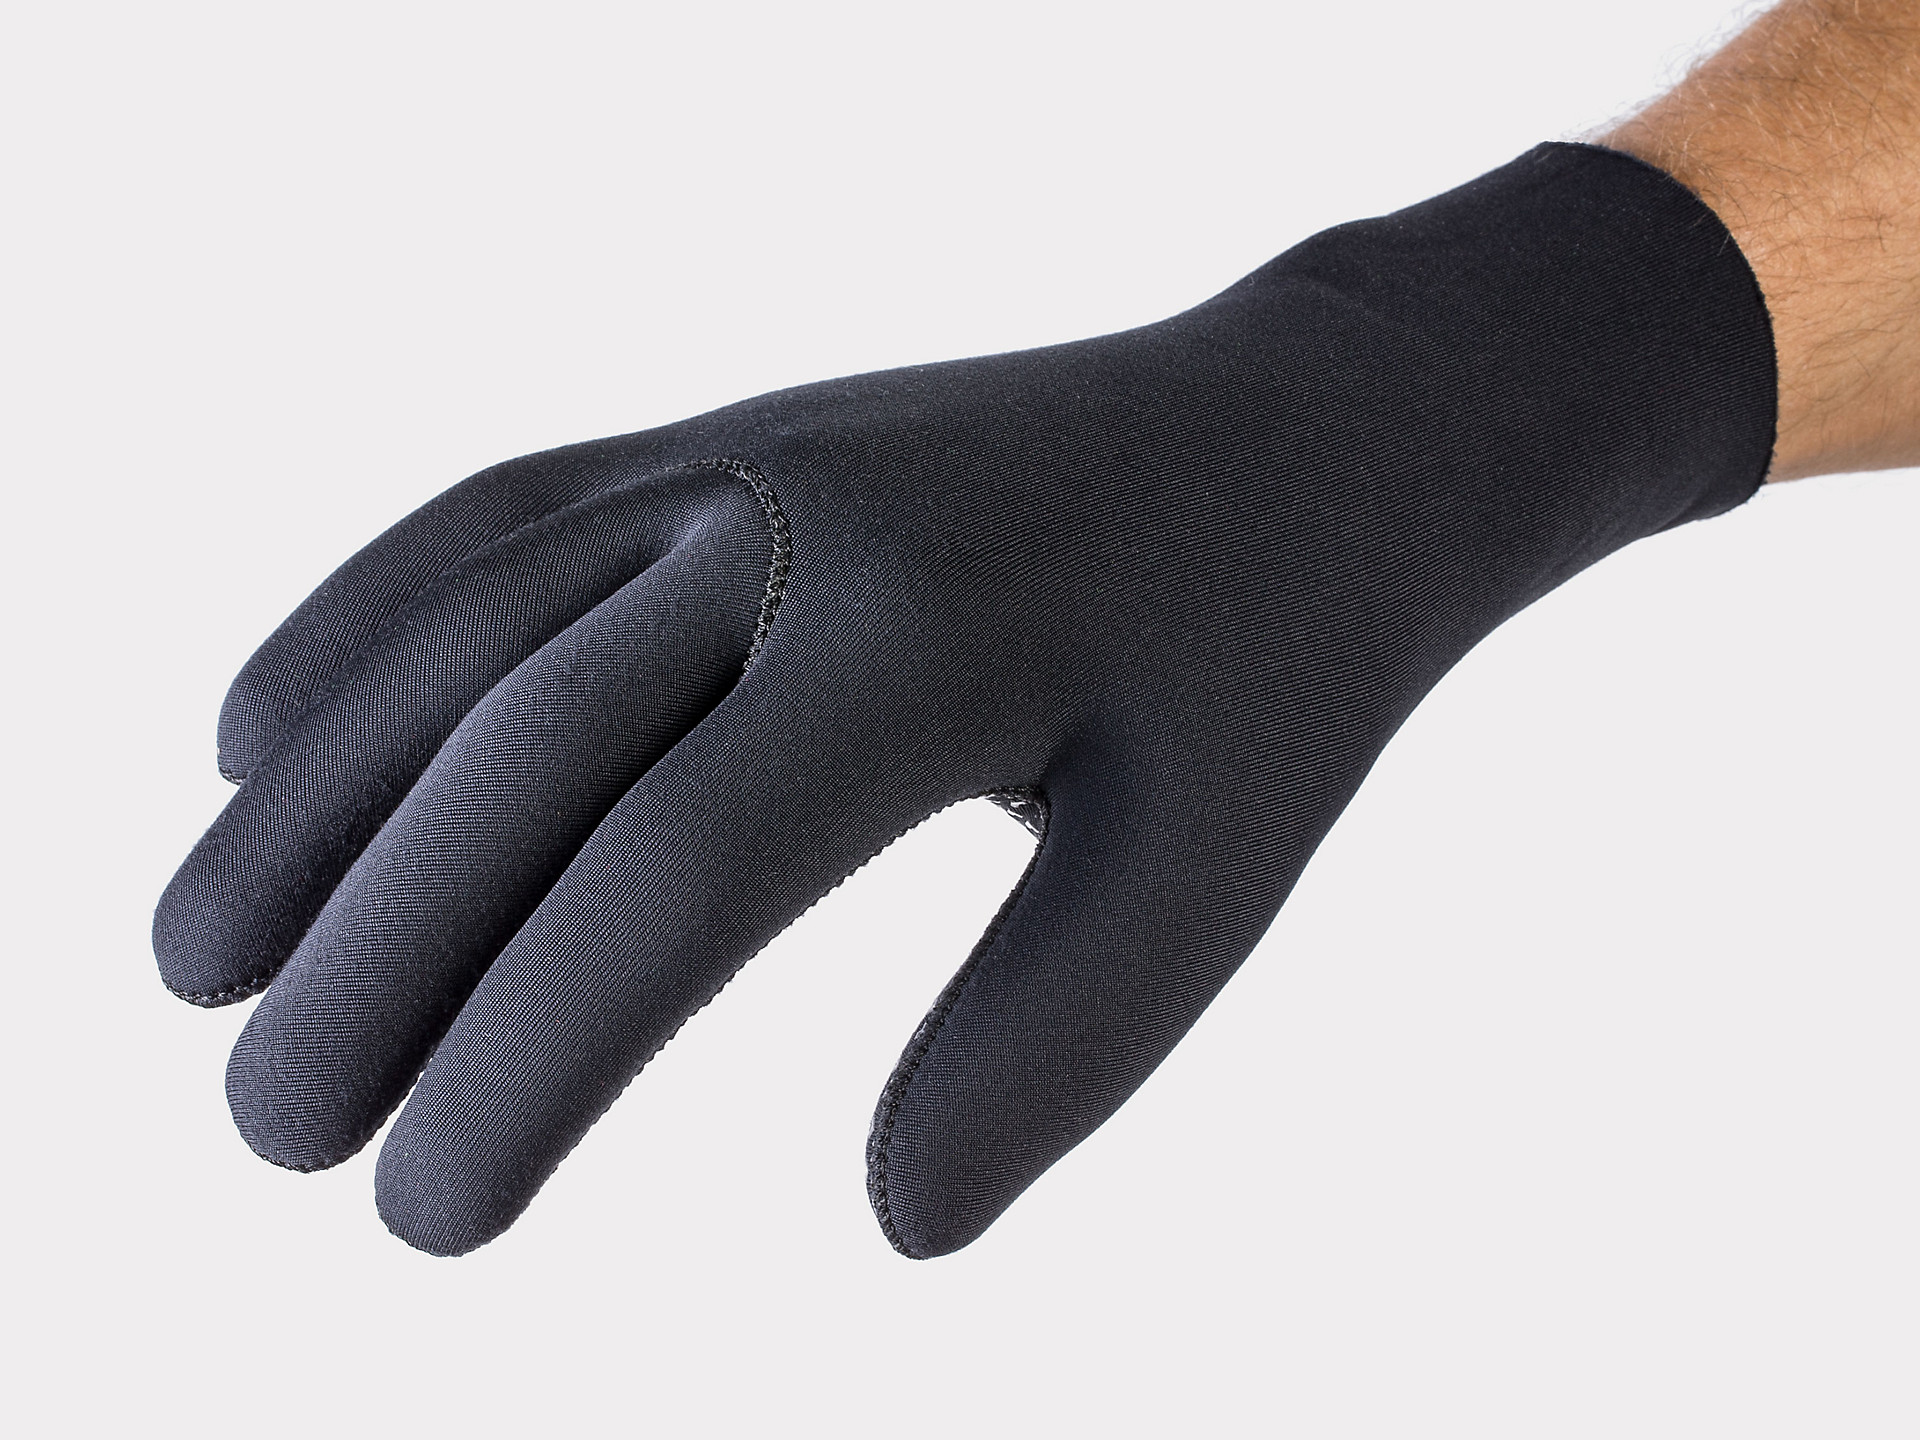 cd04c221672 Bontrager Neoprene Cycling Glove